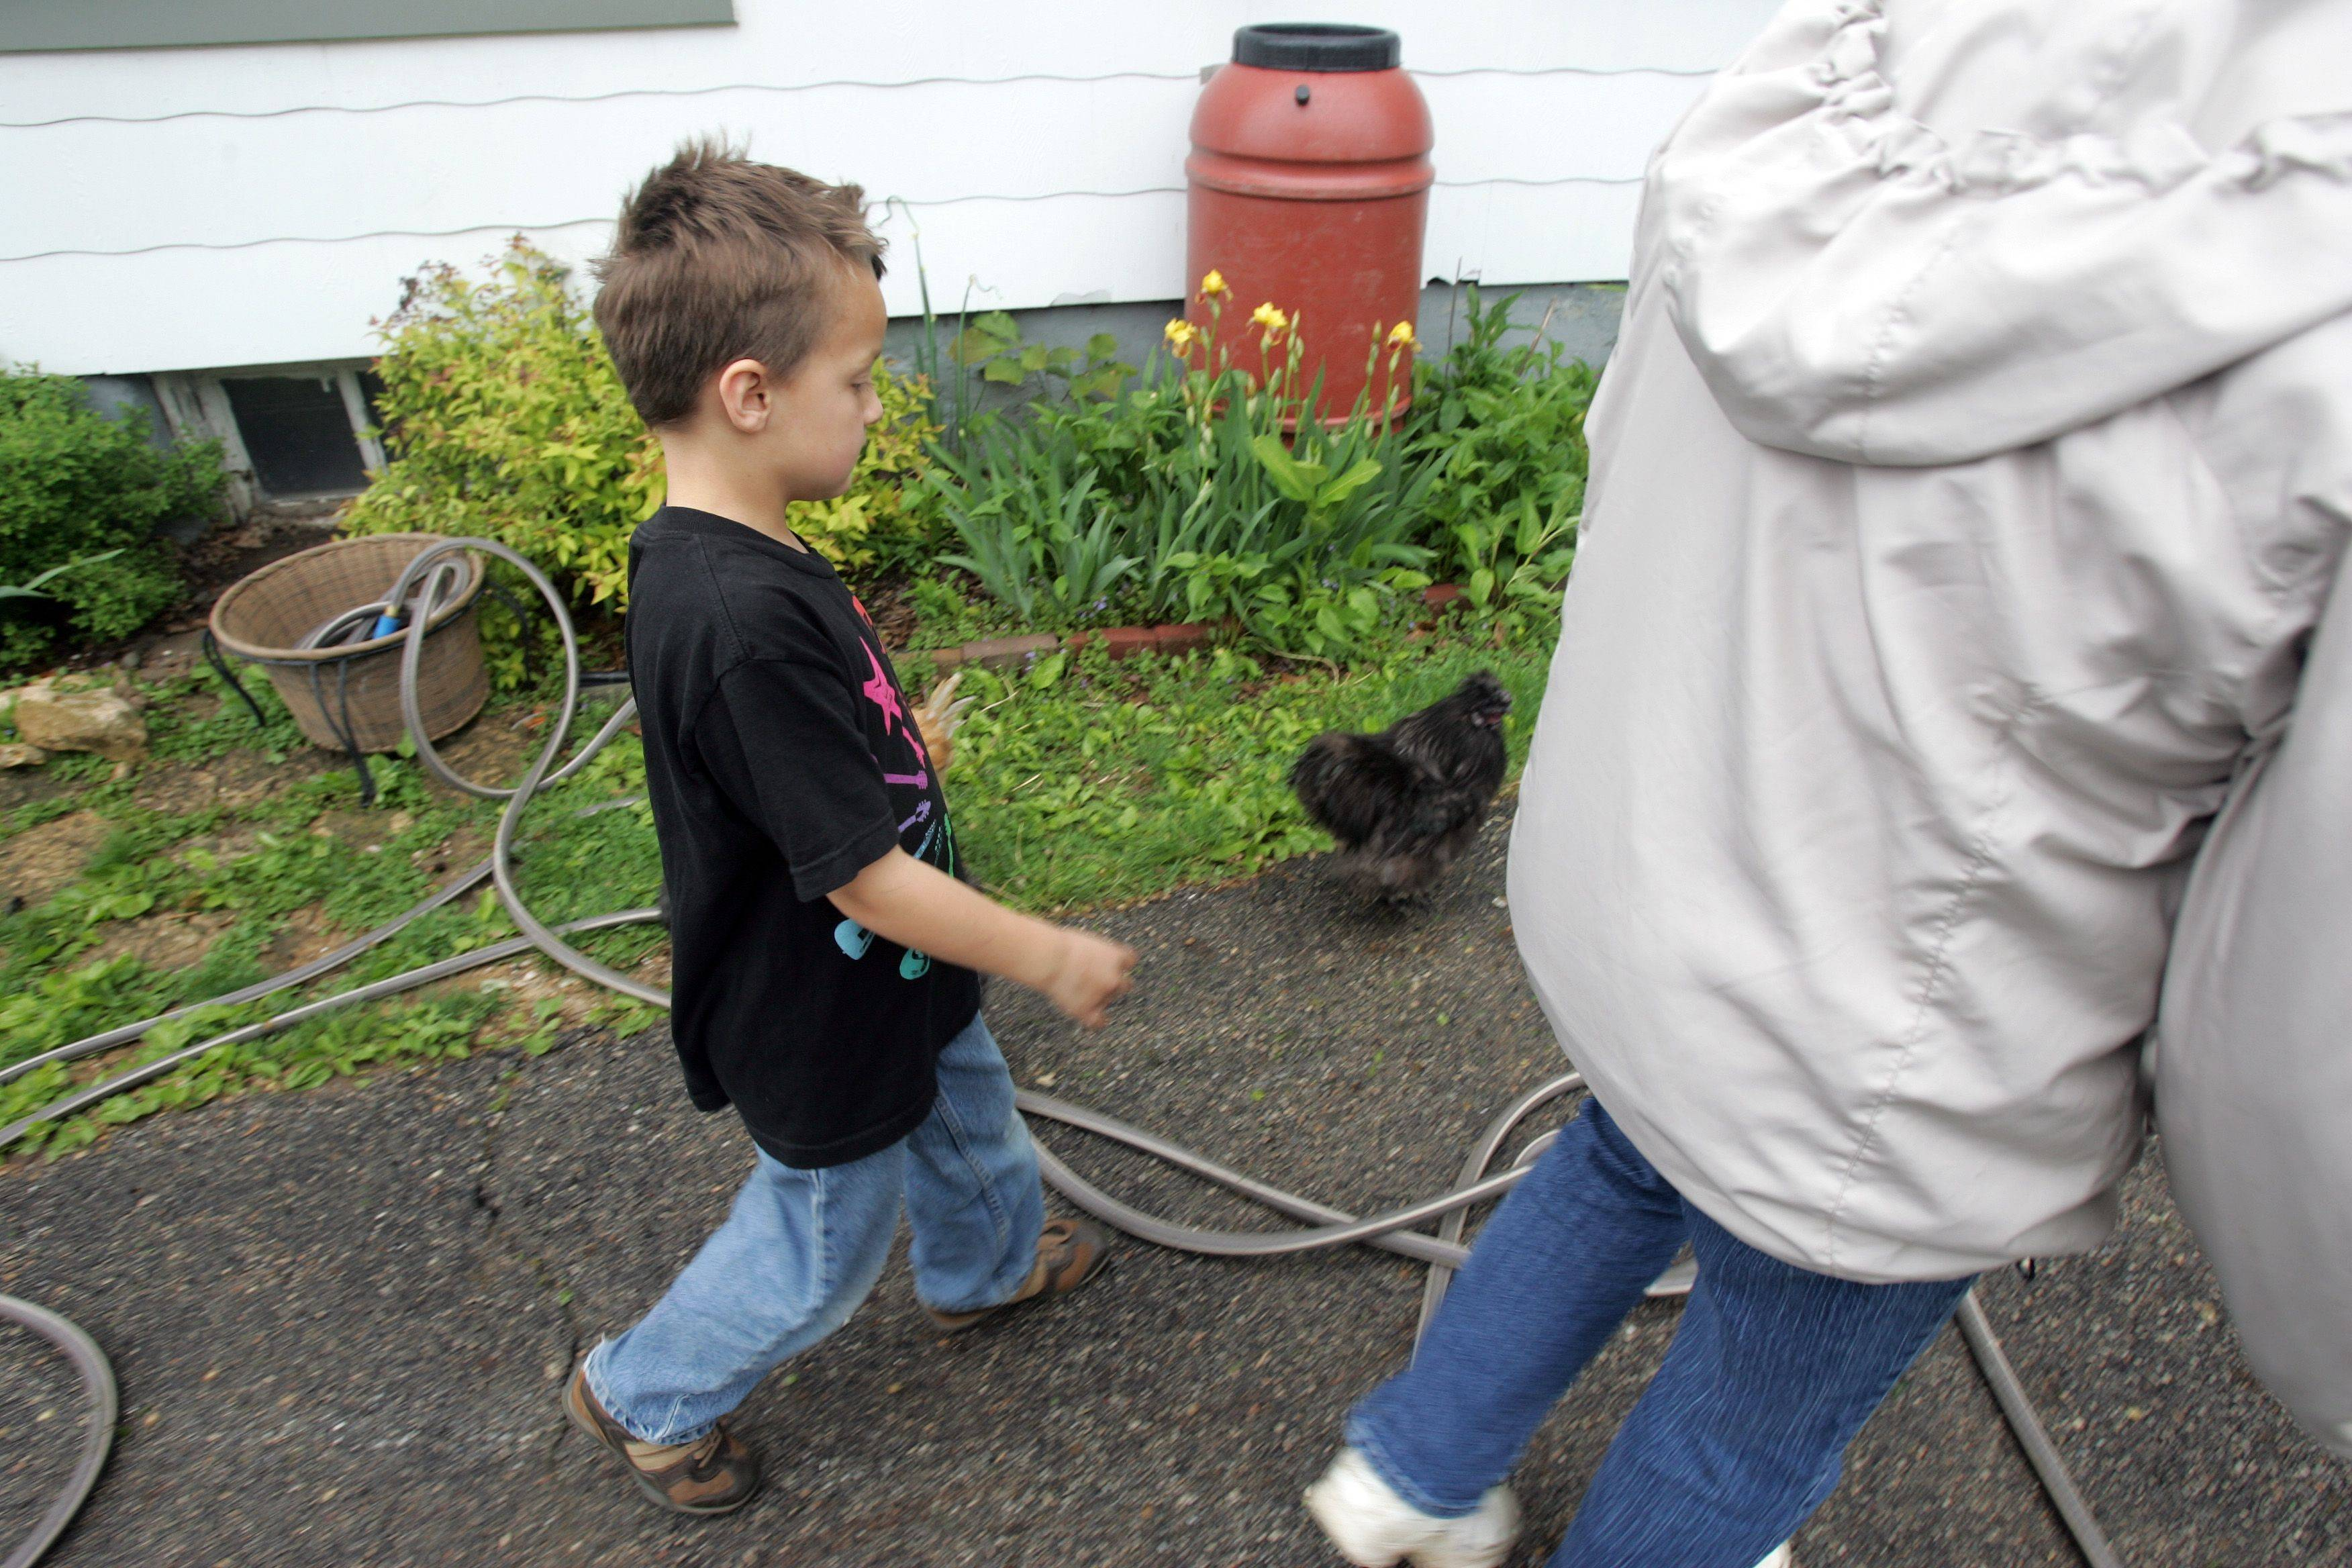 Jeanne Lyon and her son Tim, 8, prepare to visit some of the six chickens that the family keeps as pets.